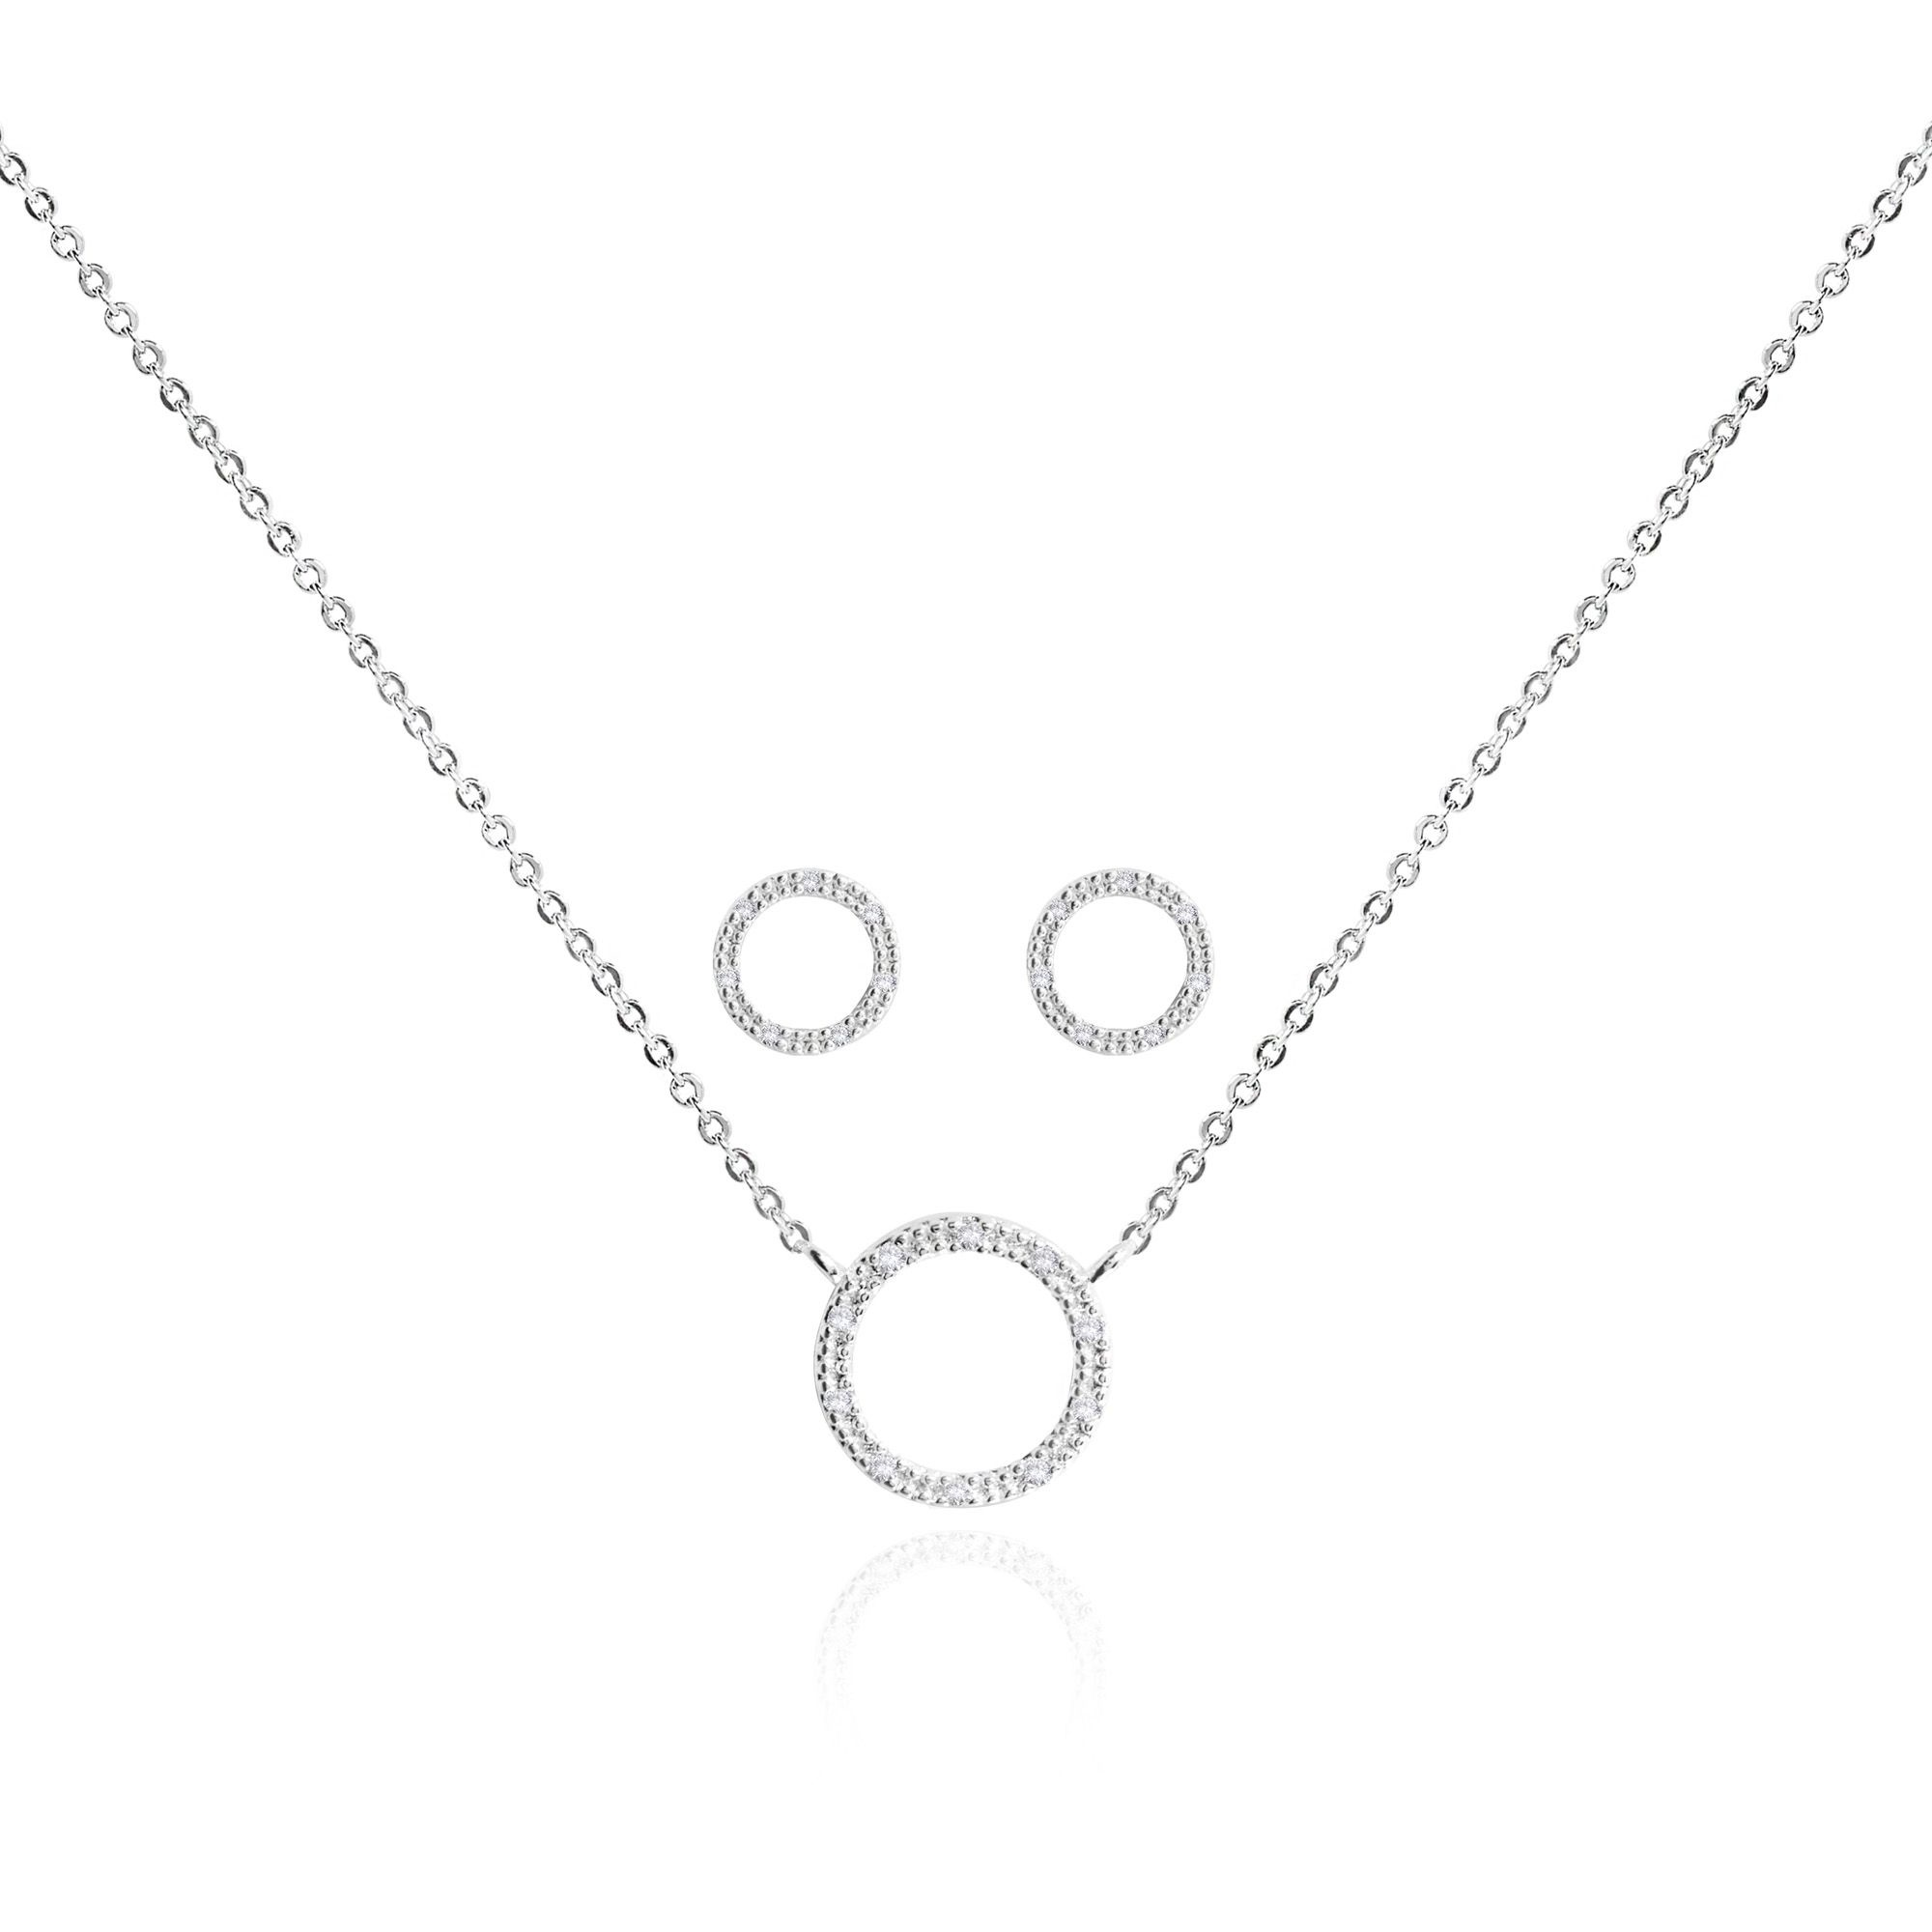 Joma Jewellery Sentiment Set - One in a Million